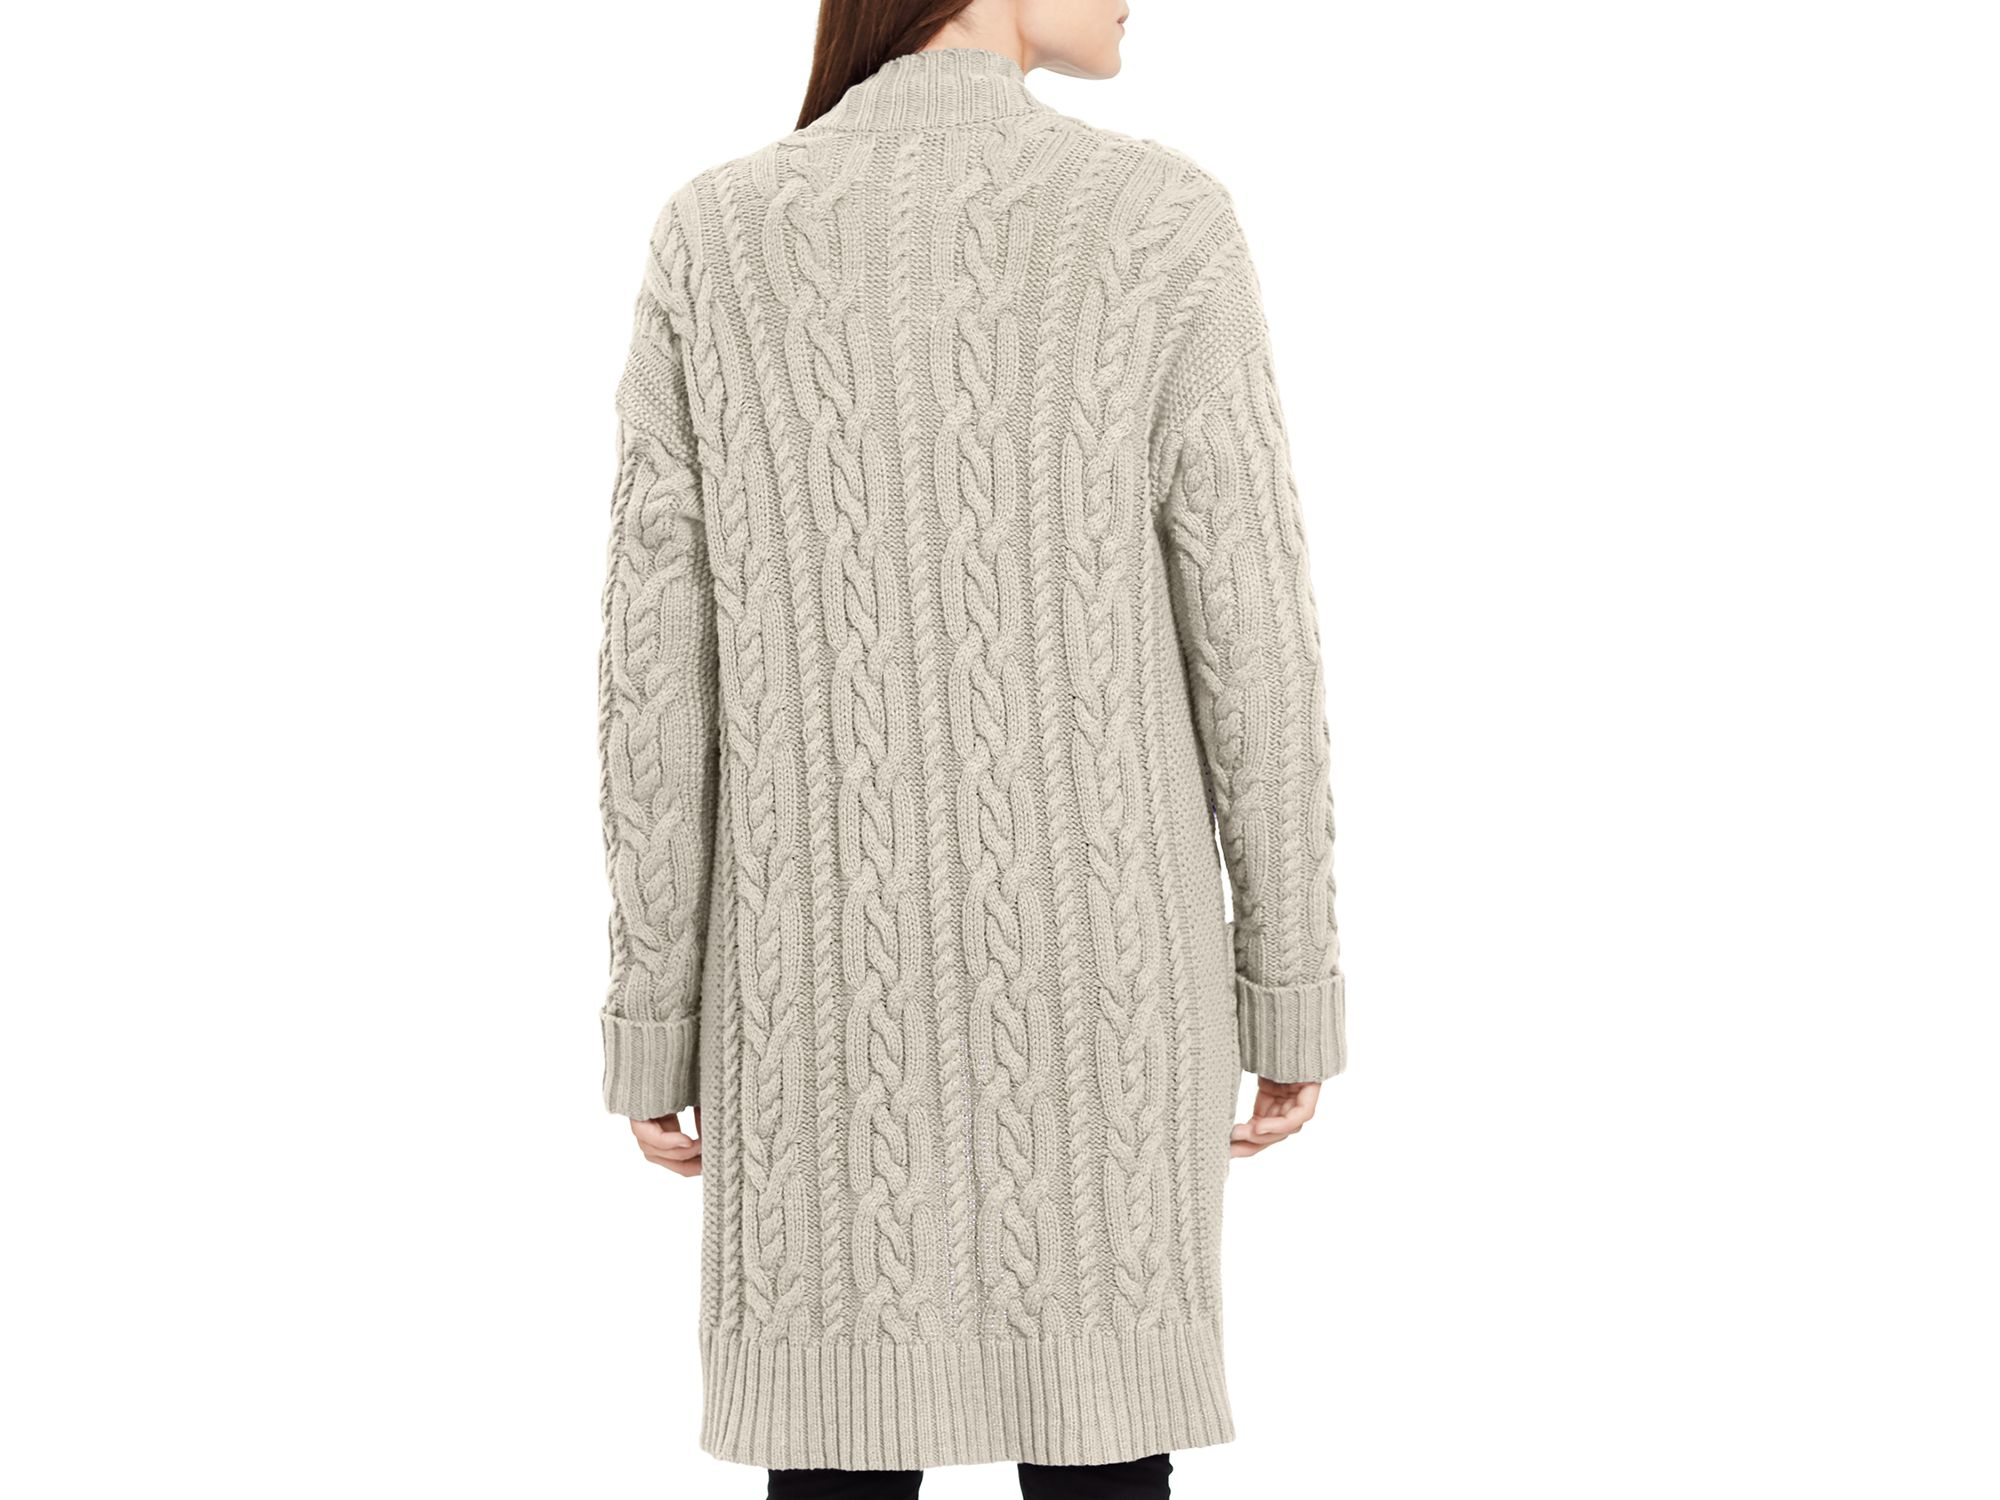 Ralph lauren Lauren Wool-cashmere Cable Knit Cardigan in Gray | Lyst